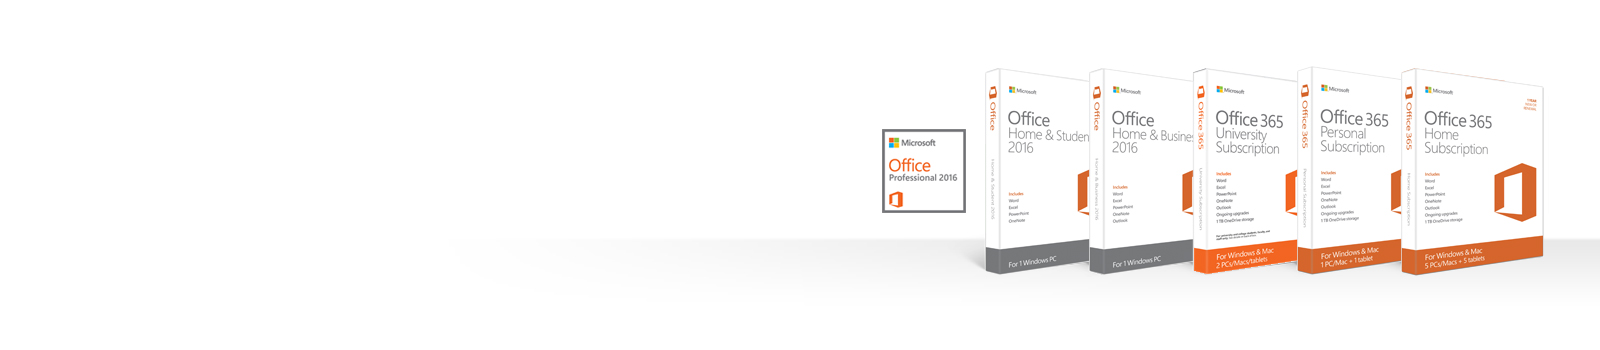 Manage, download, backup, or restore Office products